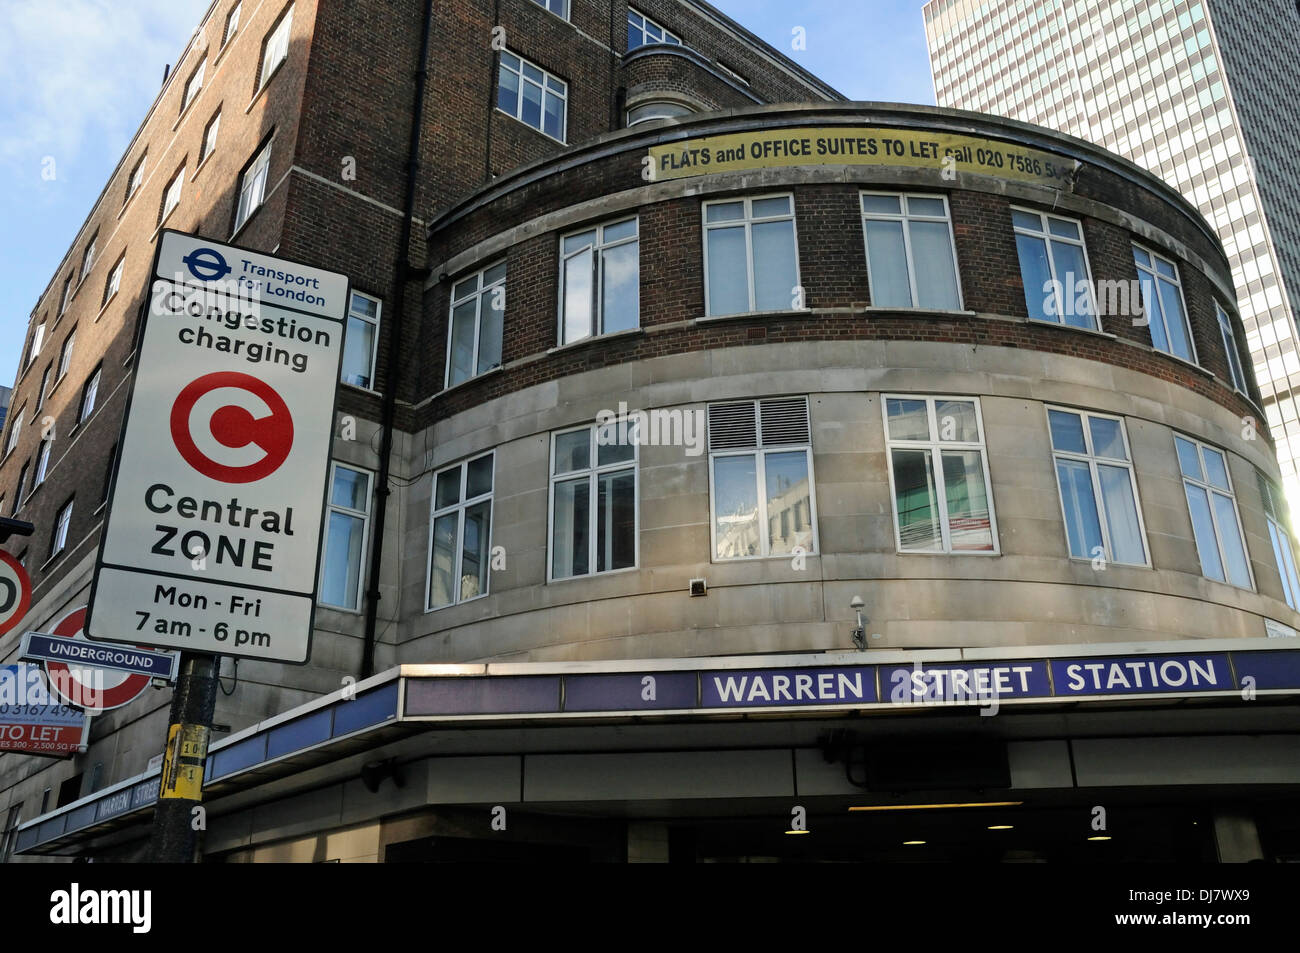 Warren Street Station from outside with Congestion Charging or charge Central Zone sign adjacent, London England UK - Stock Image